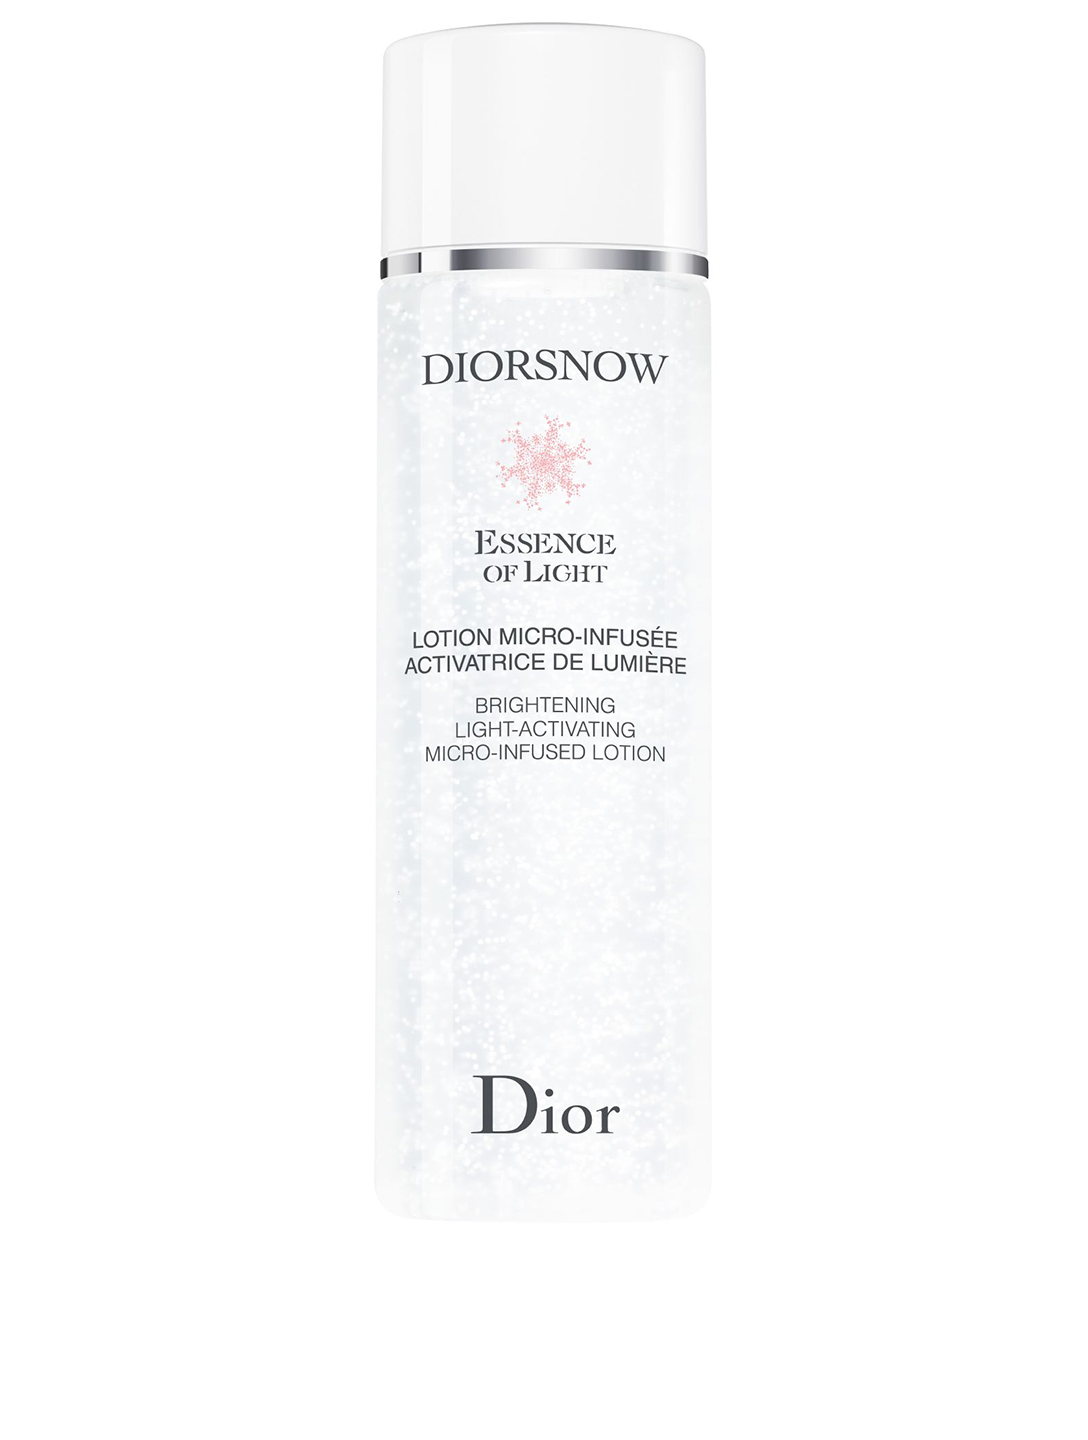 DIOR Diorsnow Brightening Light-Activating Micro-Infused Lotion Beauty